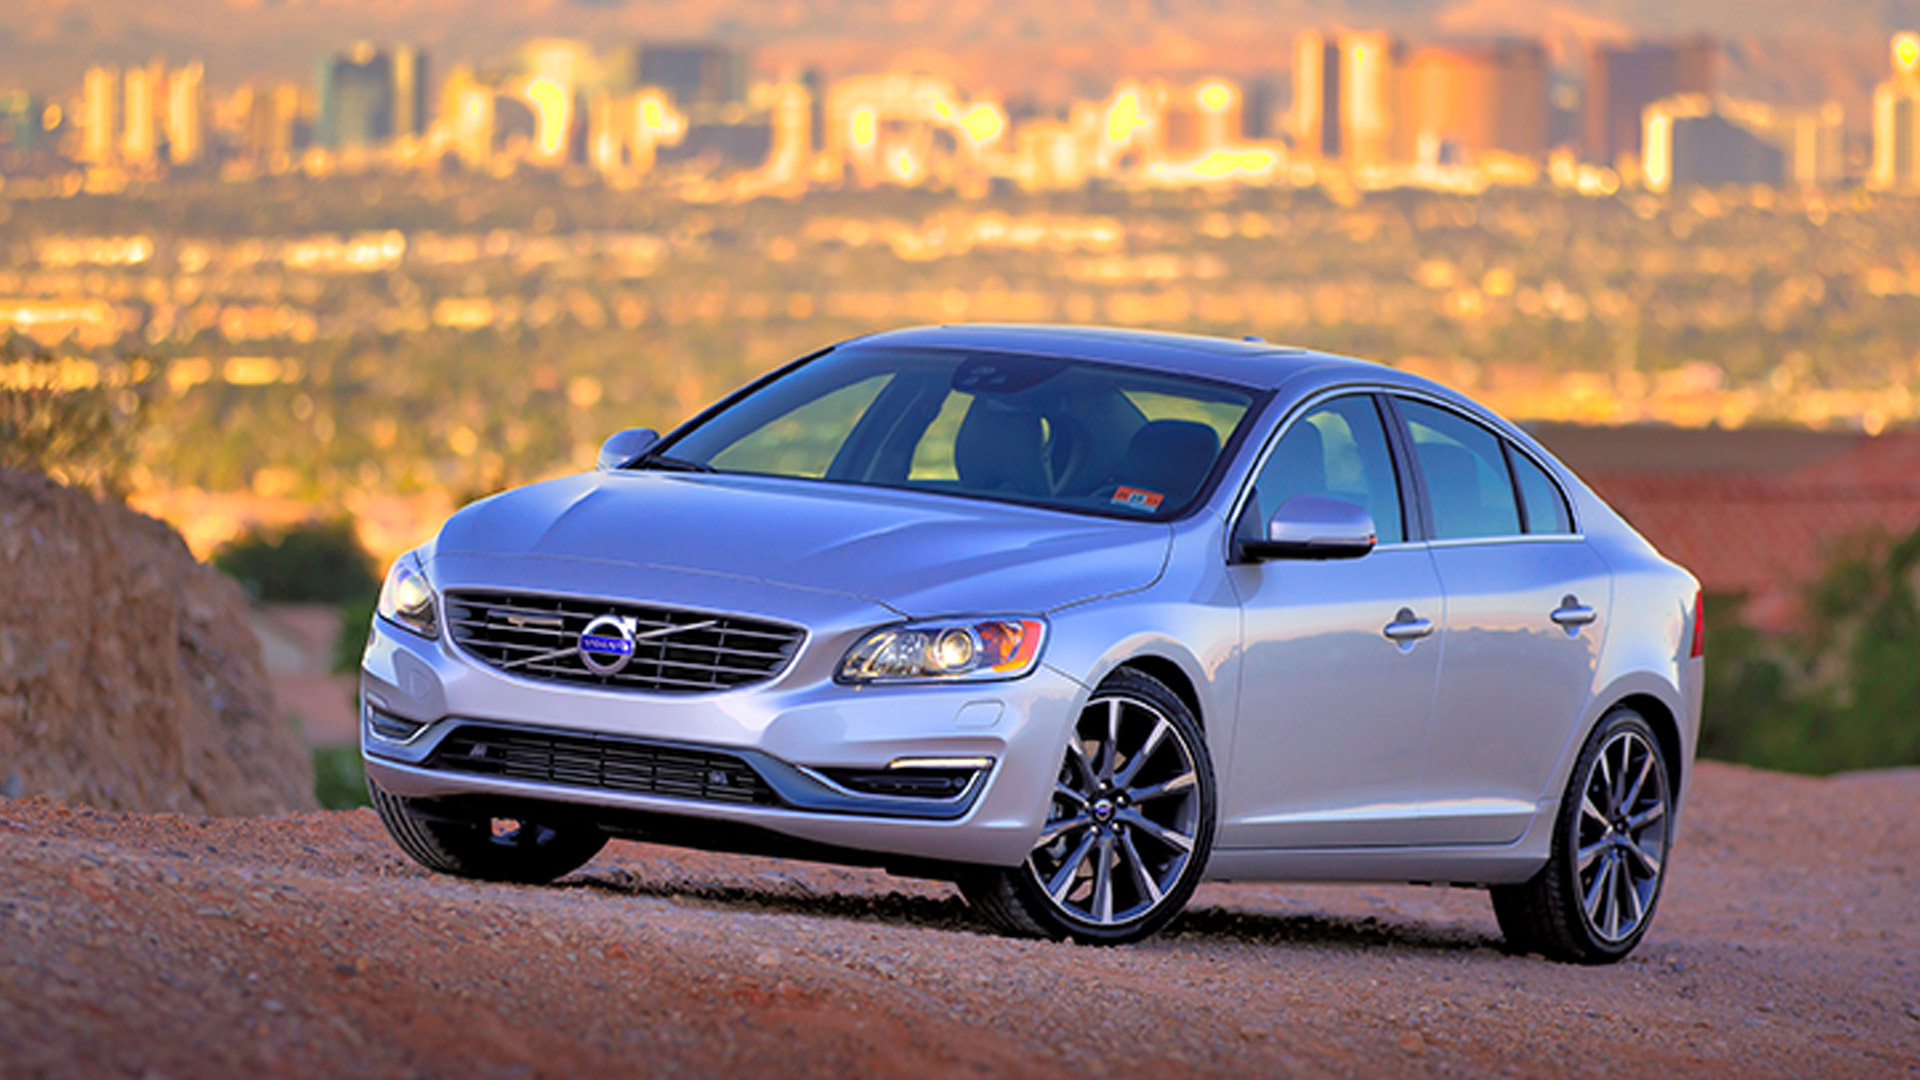 volvo s60 2017 price mileage reviews specification gallery overdrive. Black Bedroom Furniture Sets. Home Design Ideas